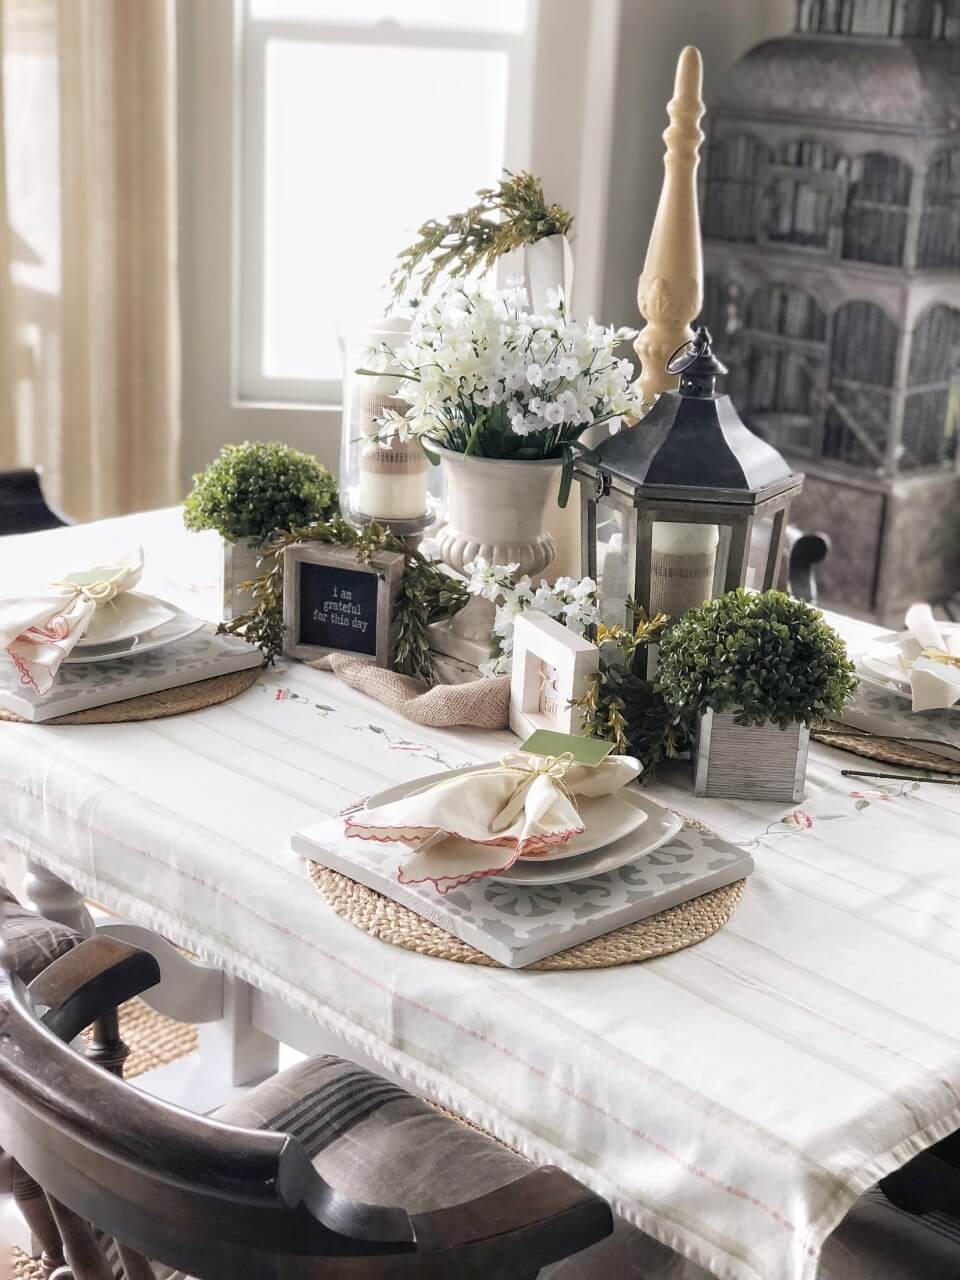 Blooming Tablescape with Wooden, Stenciled Chargers